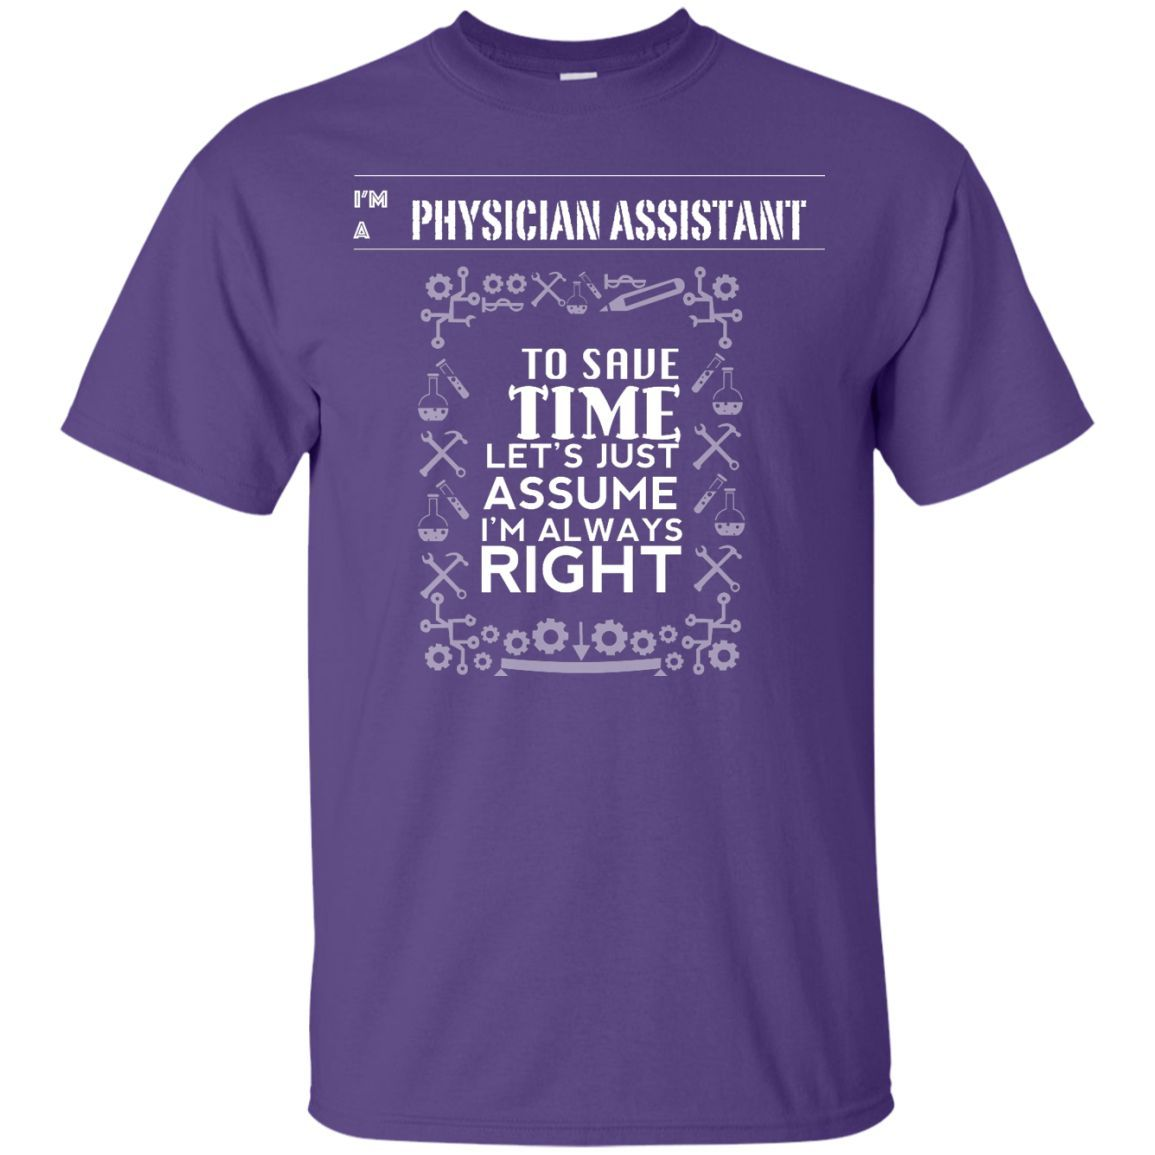 I Am a Physician Assistant - Let's Assume I Am Always Right [Novelty T-Shirt]